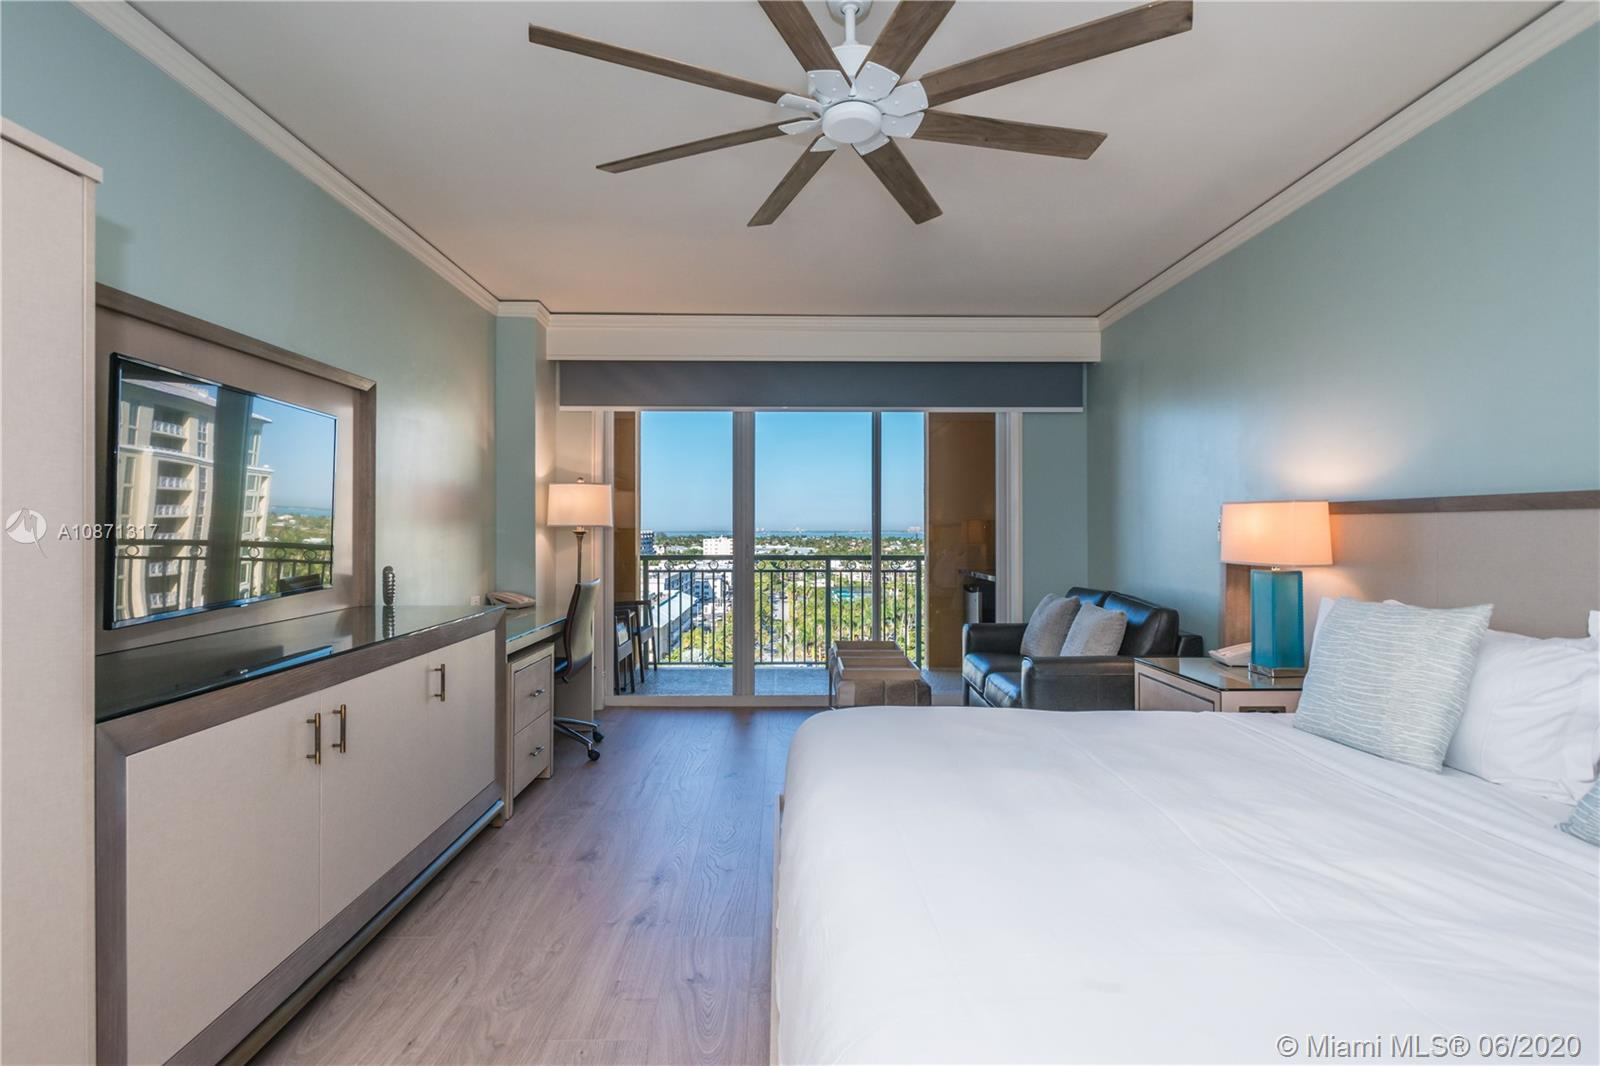 This is a great opportunity to rent an AMAZING STUDIO AT THE RITZ-CARLTON HOTEL in Key Biscayne. This is the best priced unit, has been renovated and is fully furnished. Enjoy your vacation in this luxurious condo hotel residence while having access to all of the hotel amenities.